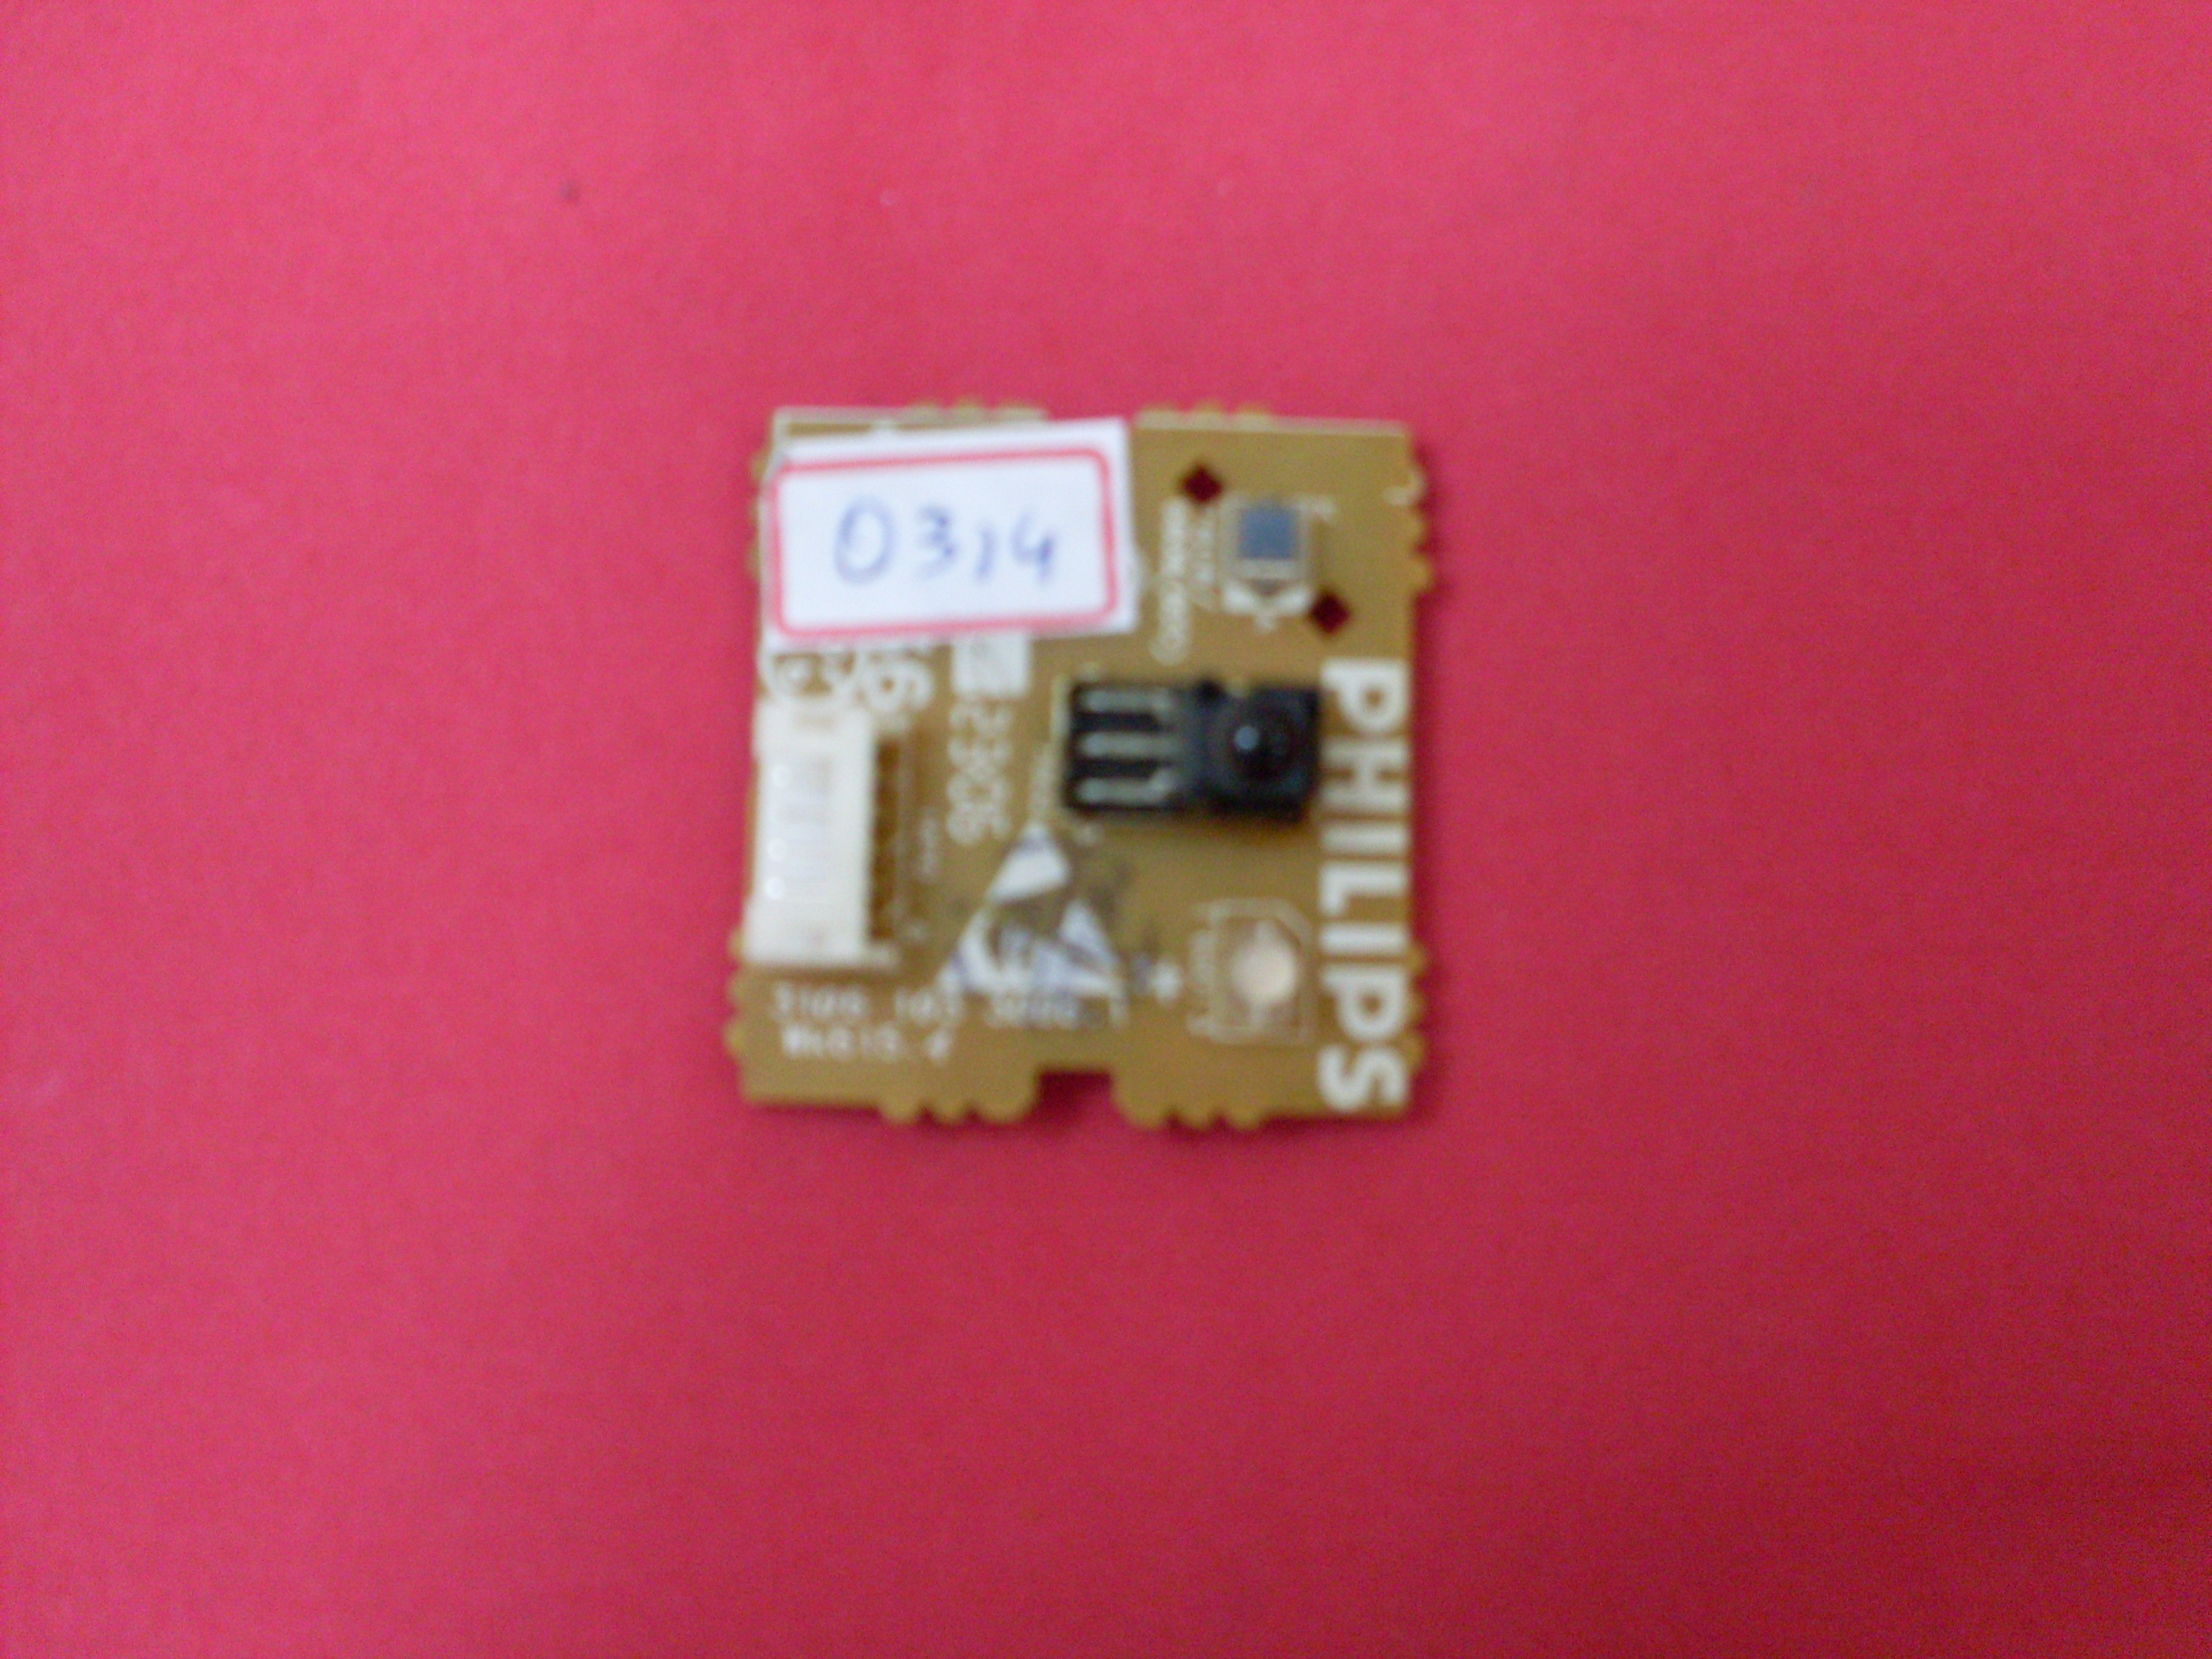 PLACA SENSOR DO REMOTO 3106 103 3006 PLASMA PHILIPS 42PF7321